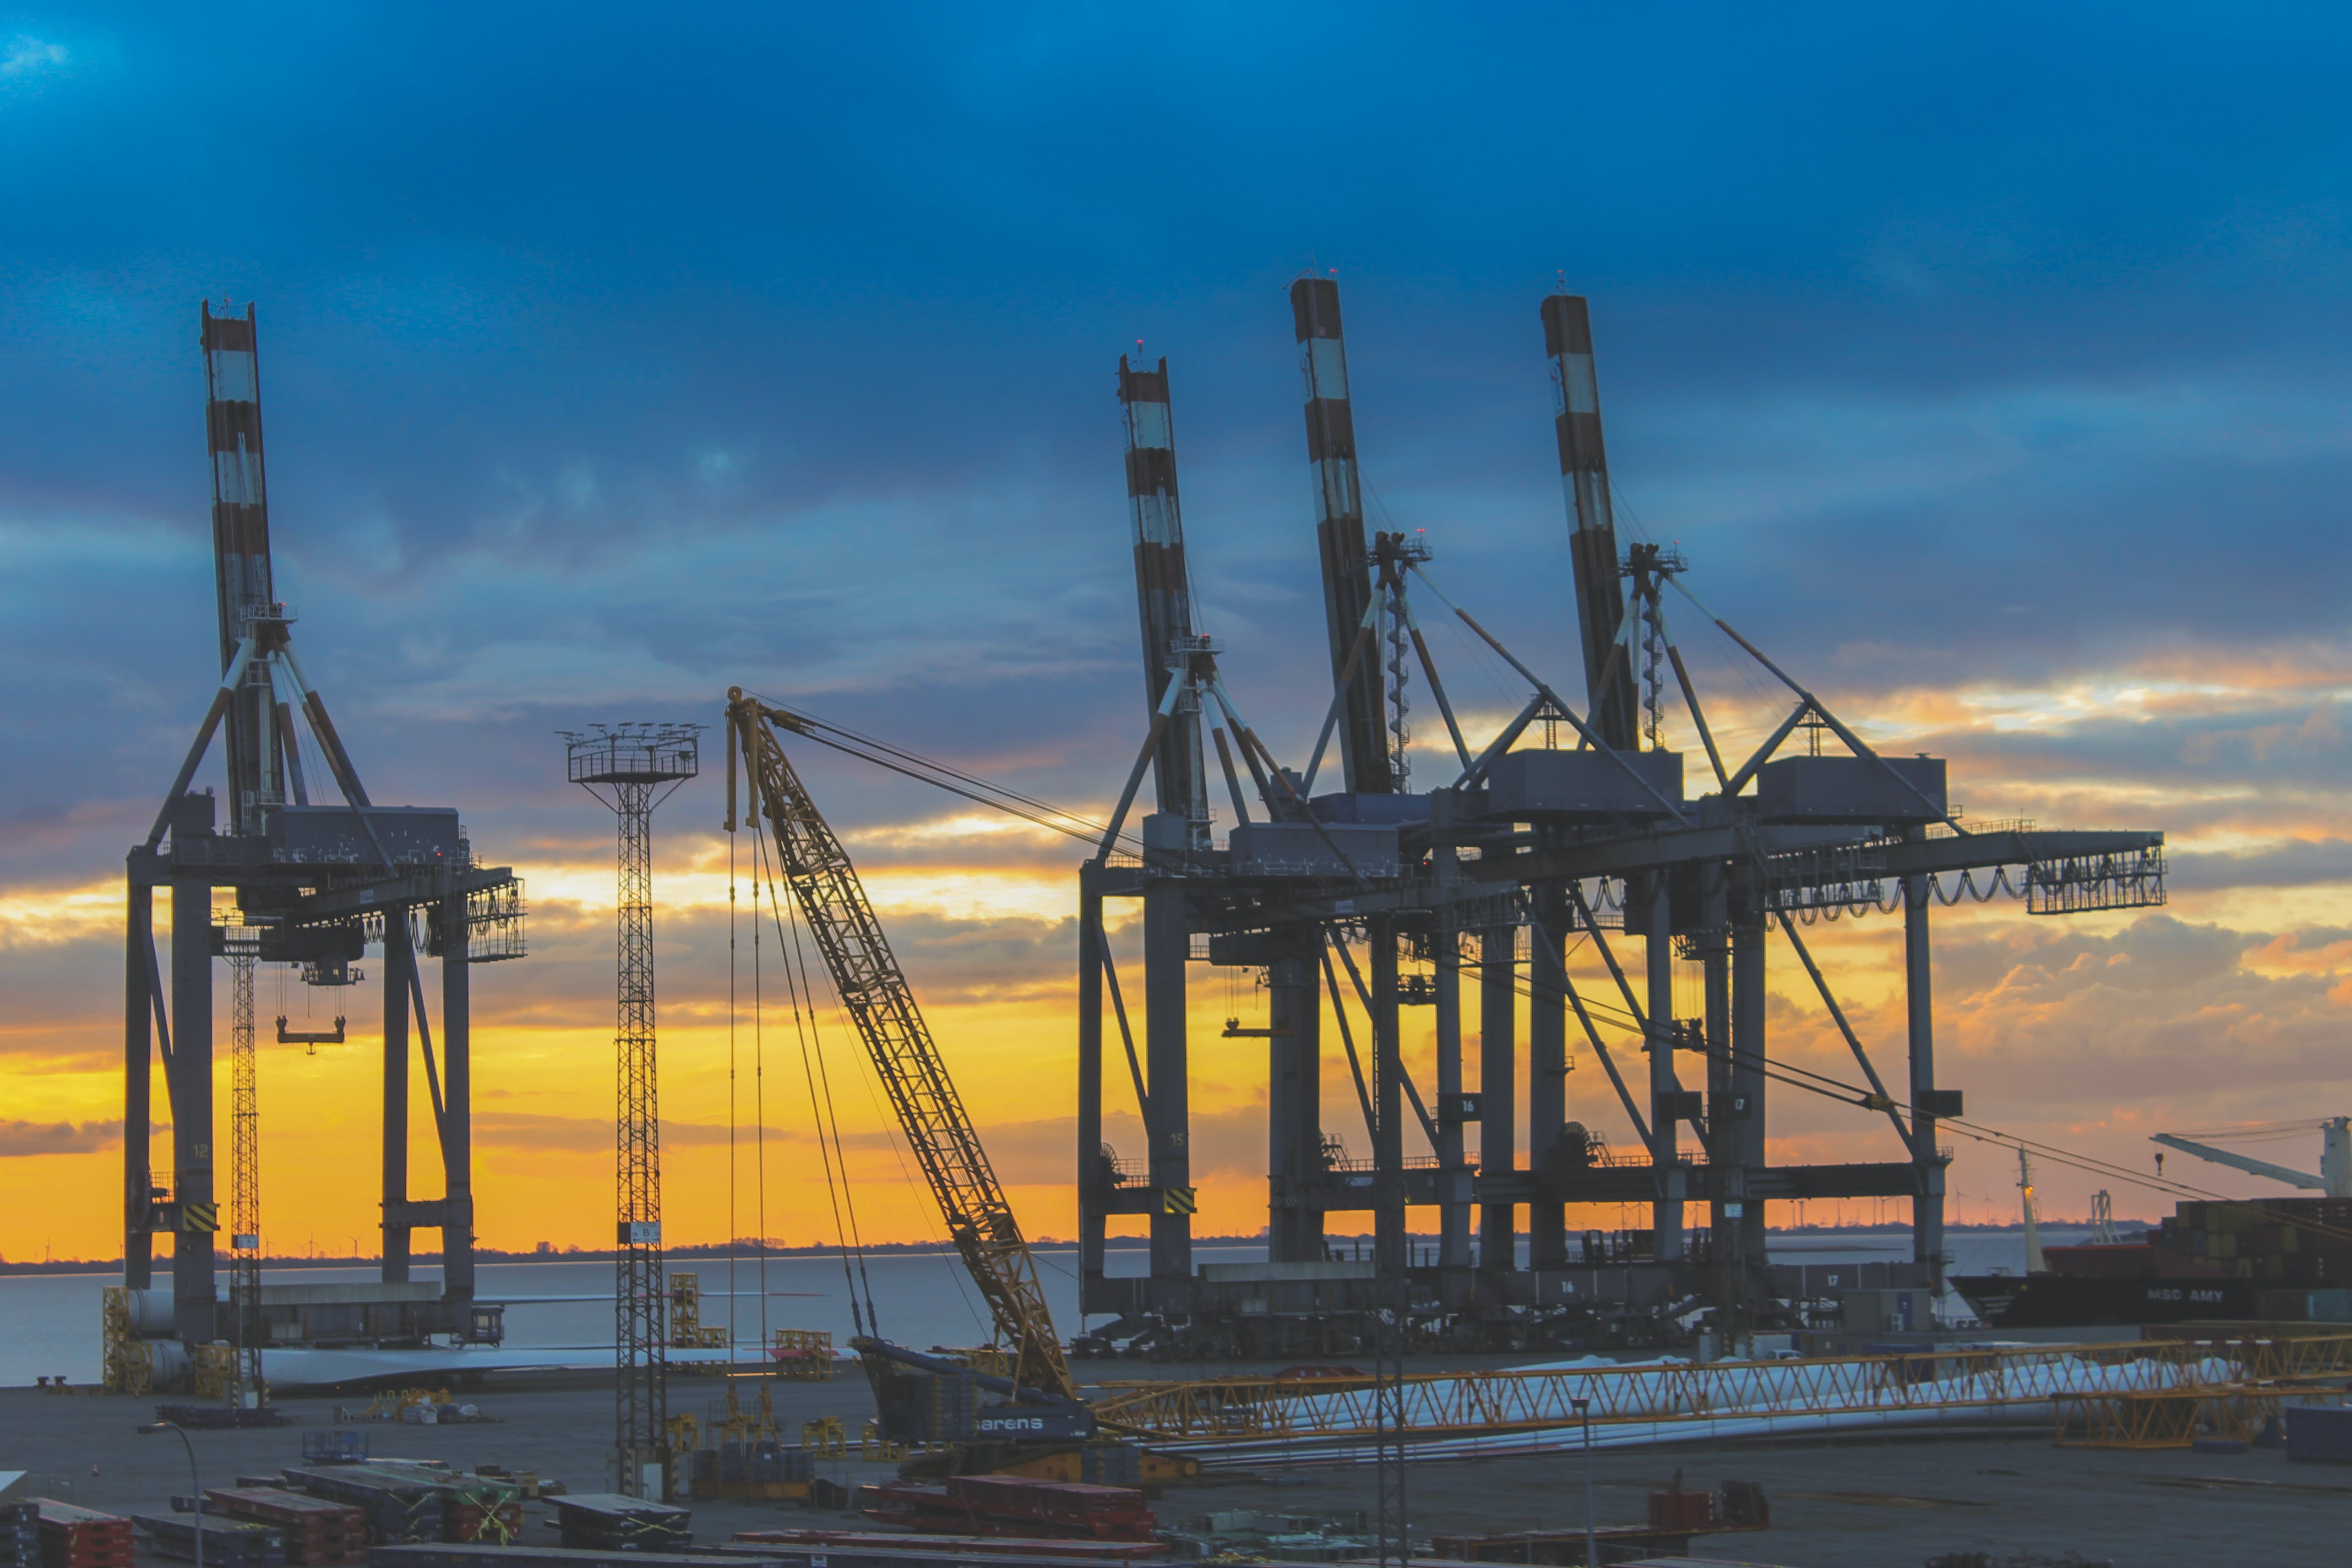 Free stock photo of port, container, harbour cranes, golden sunset